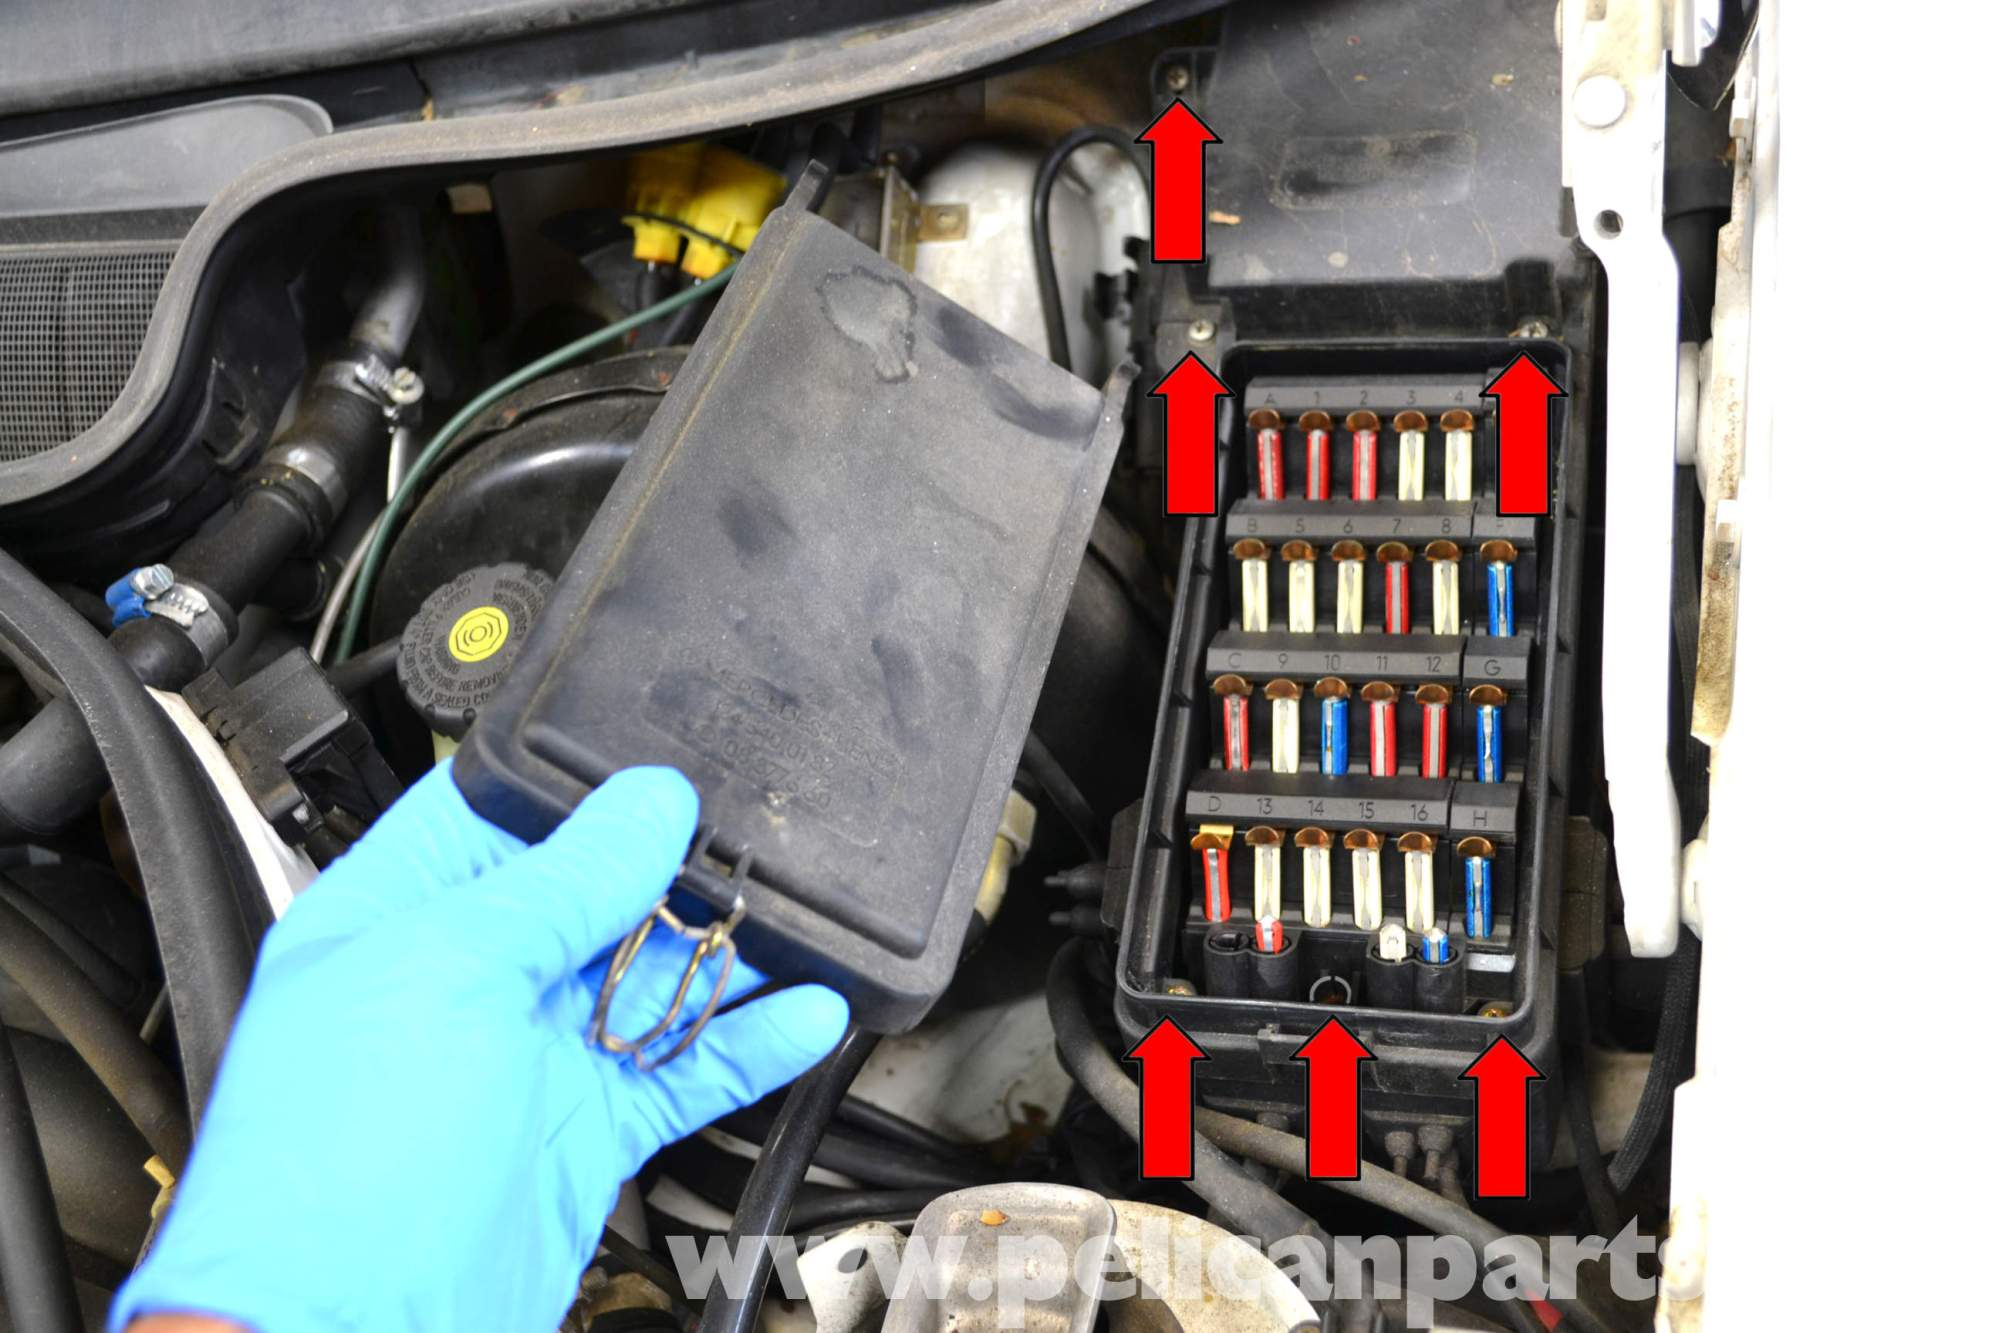 hight resolution of mercedes benz w124 fuse box wiring diagram mercedes benz w124 fuse box